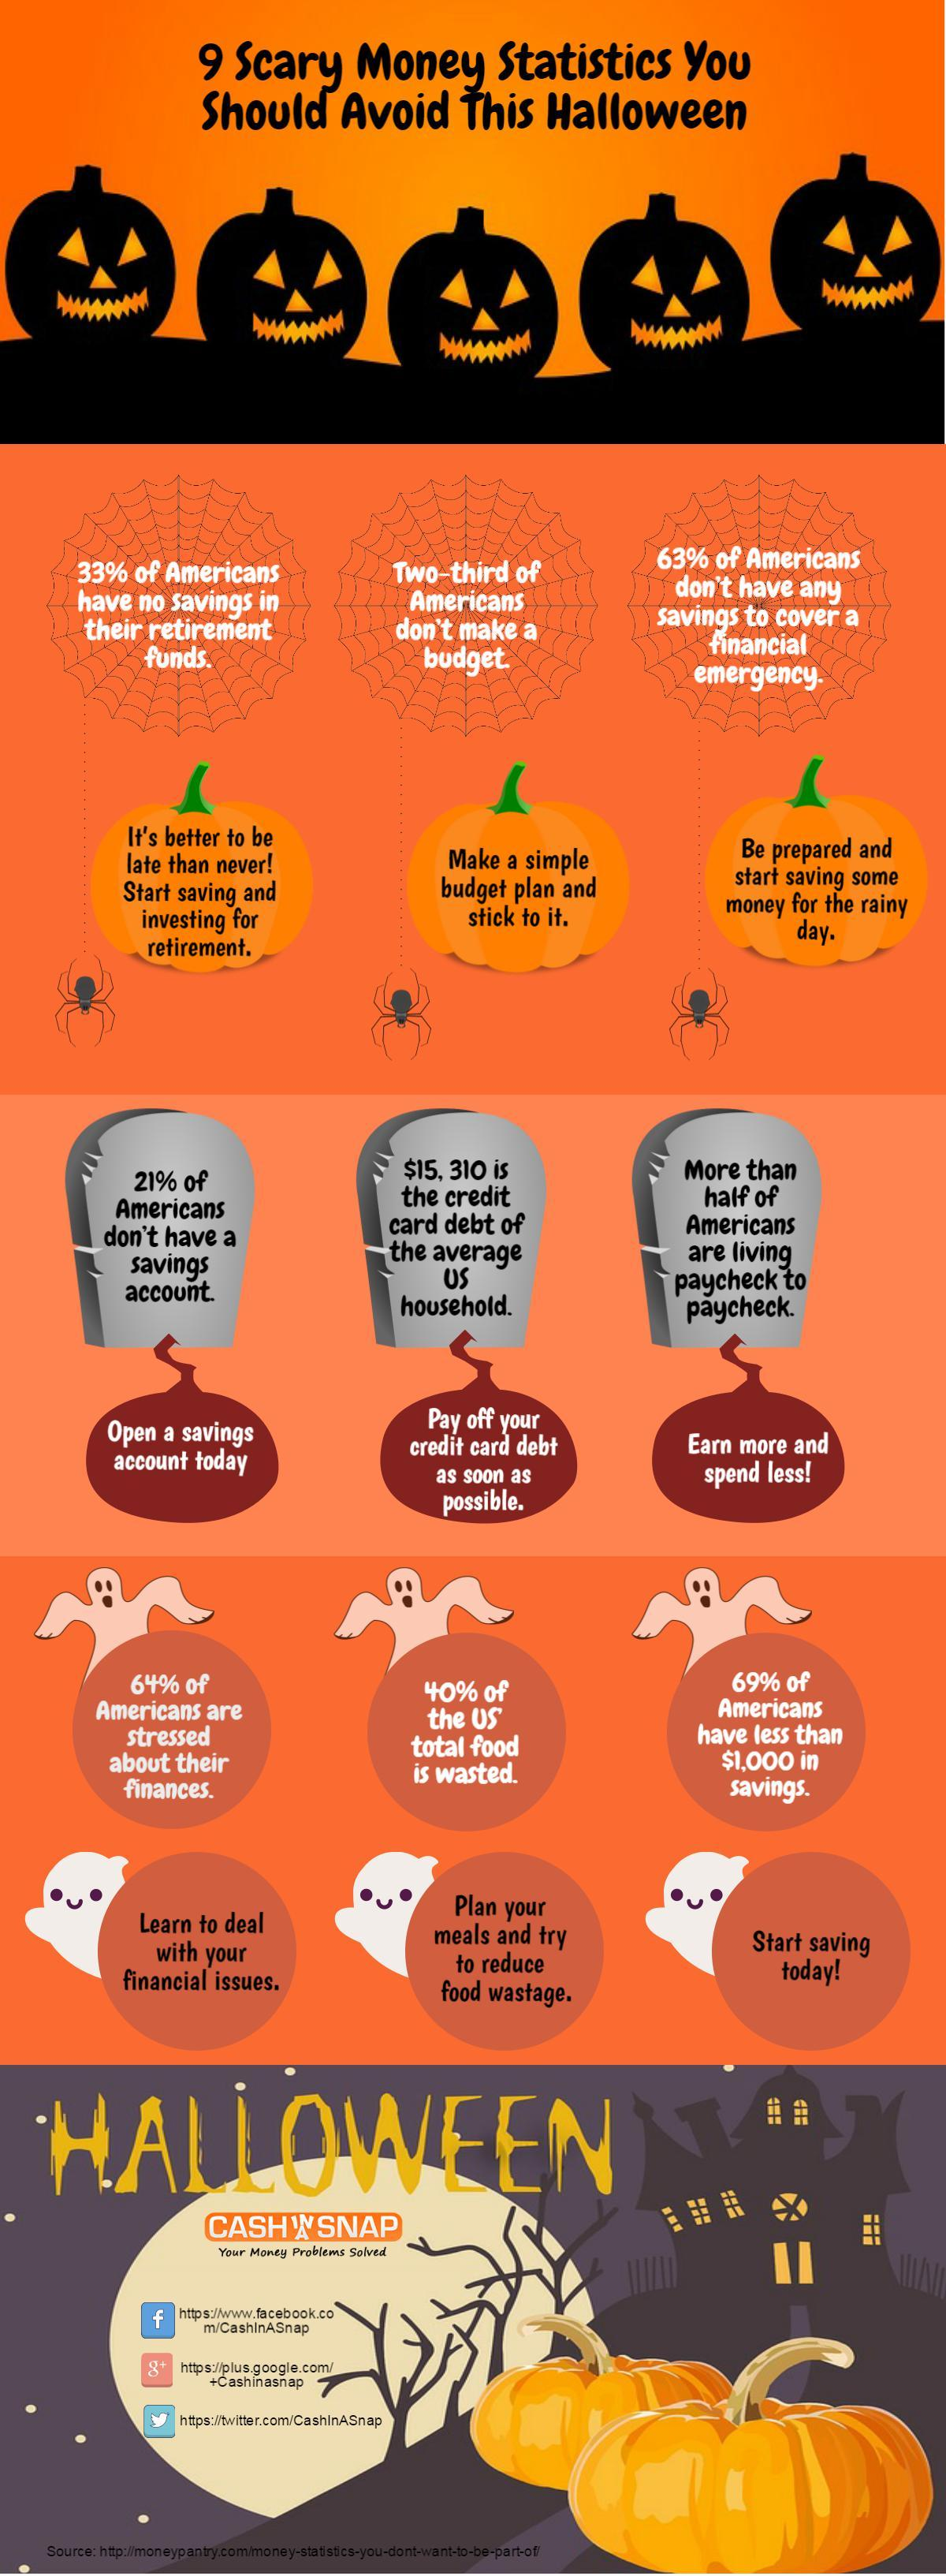 Scary Money Statistics For Halloween